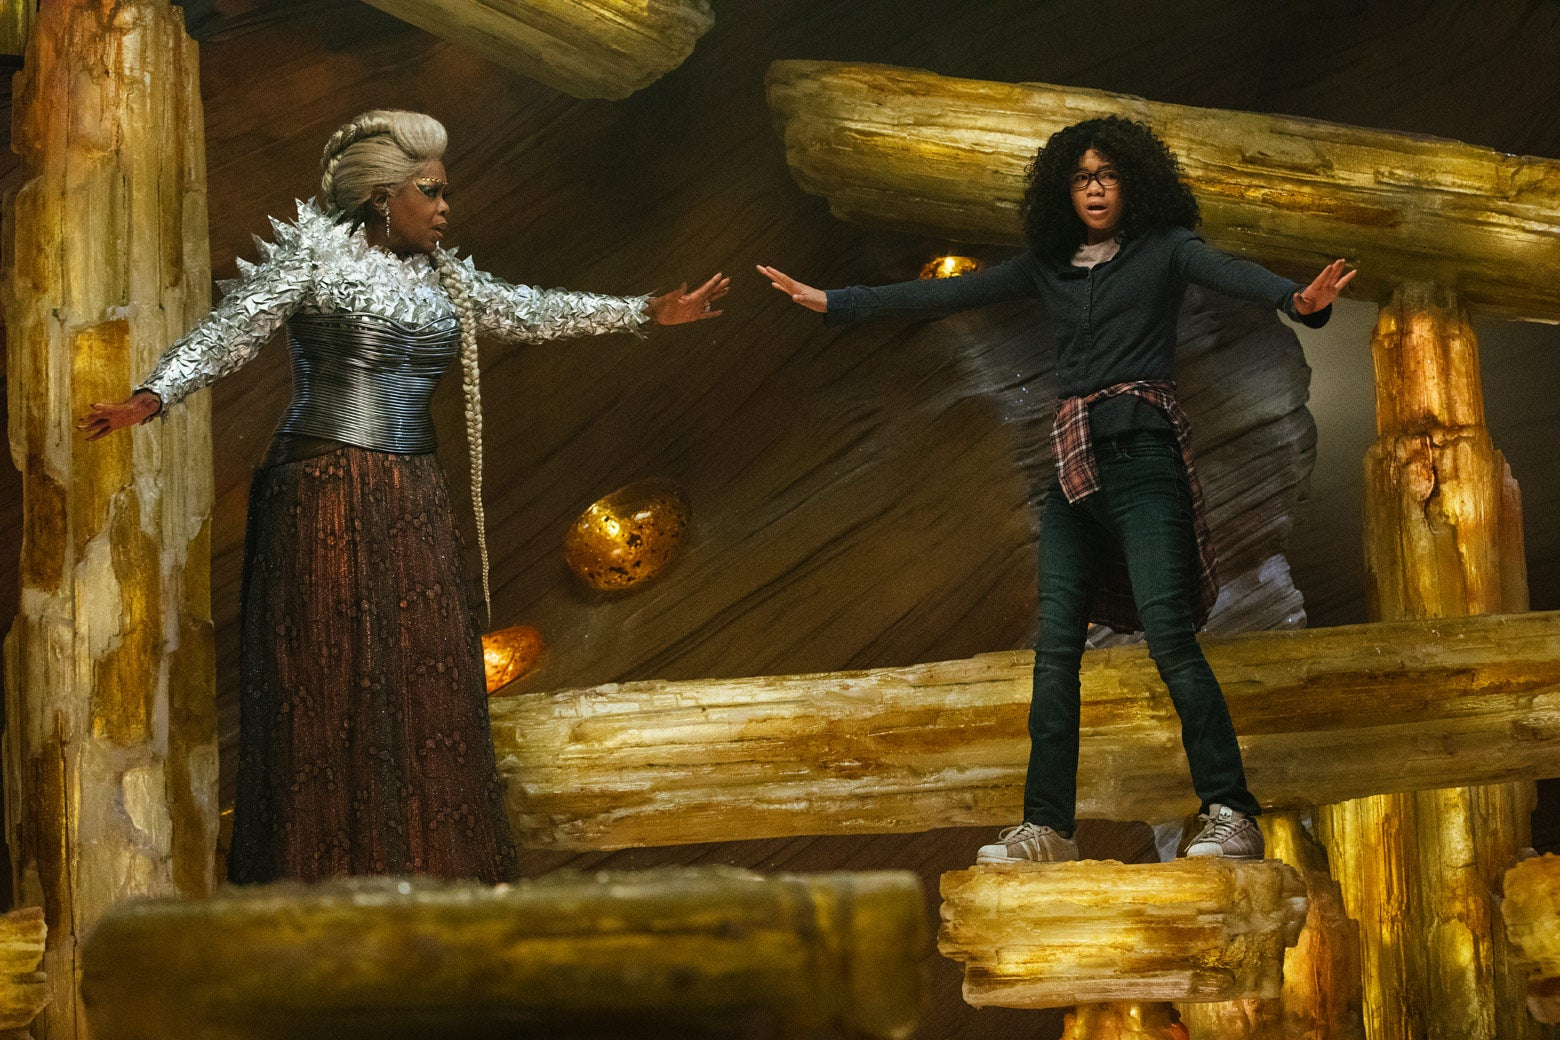 Oprah Winfrey as Mrs. Which and Storm Reid as Meg Murry in Disney's A Wrinkle in Time.